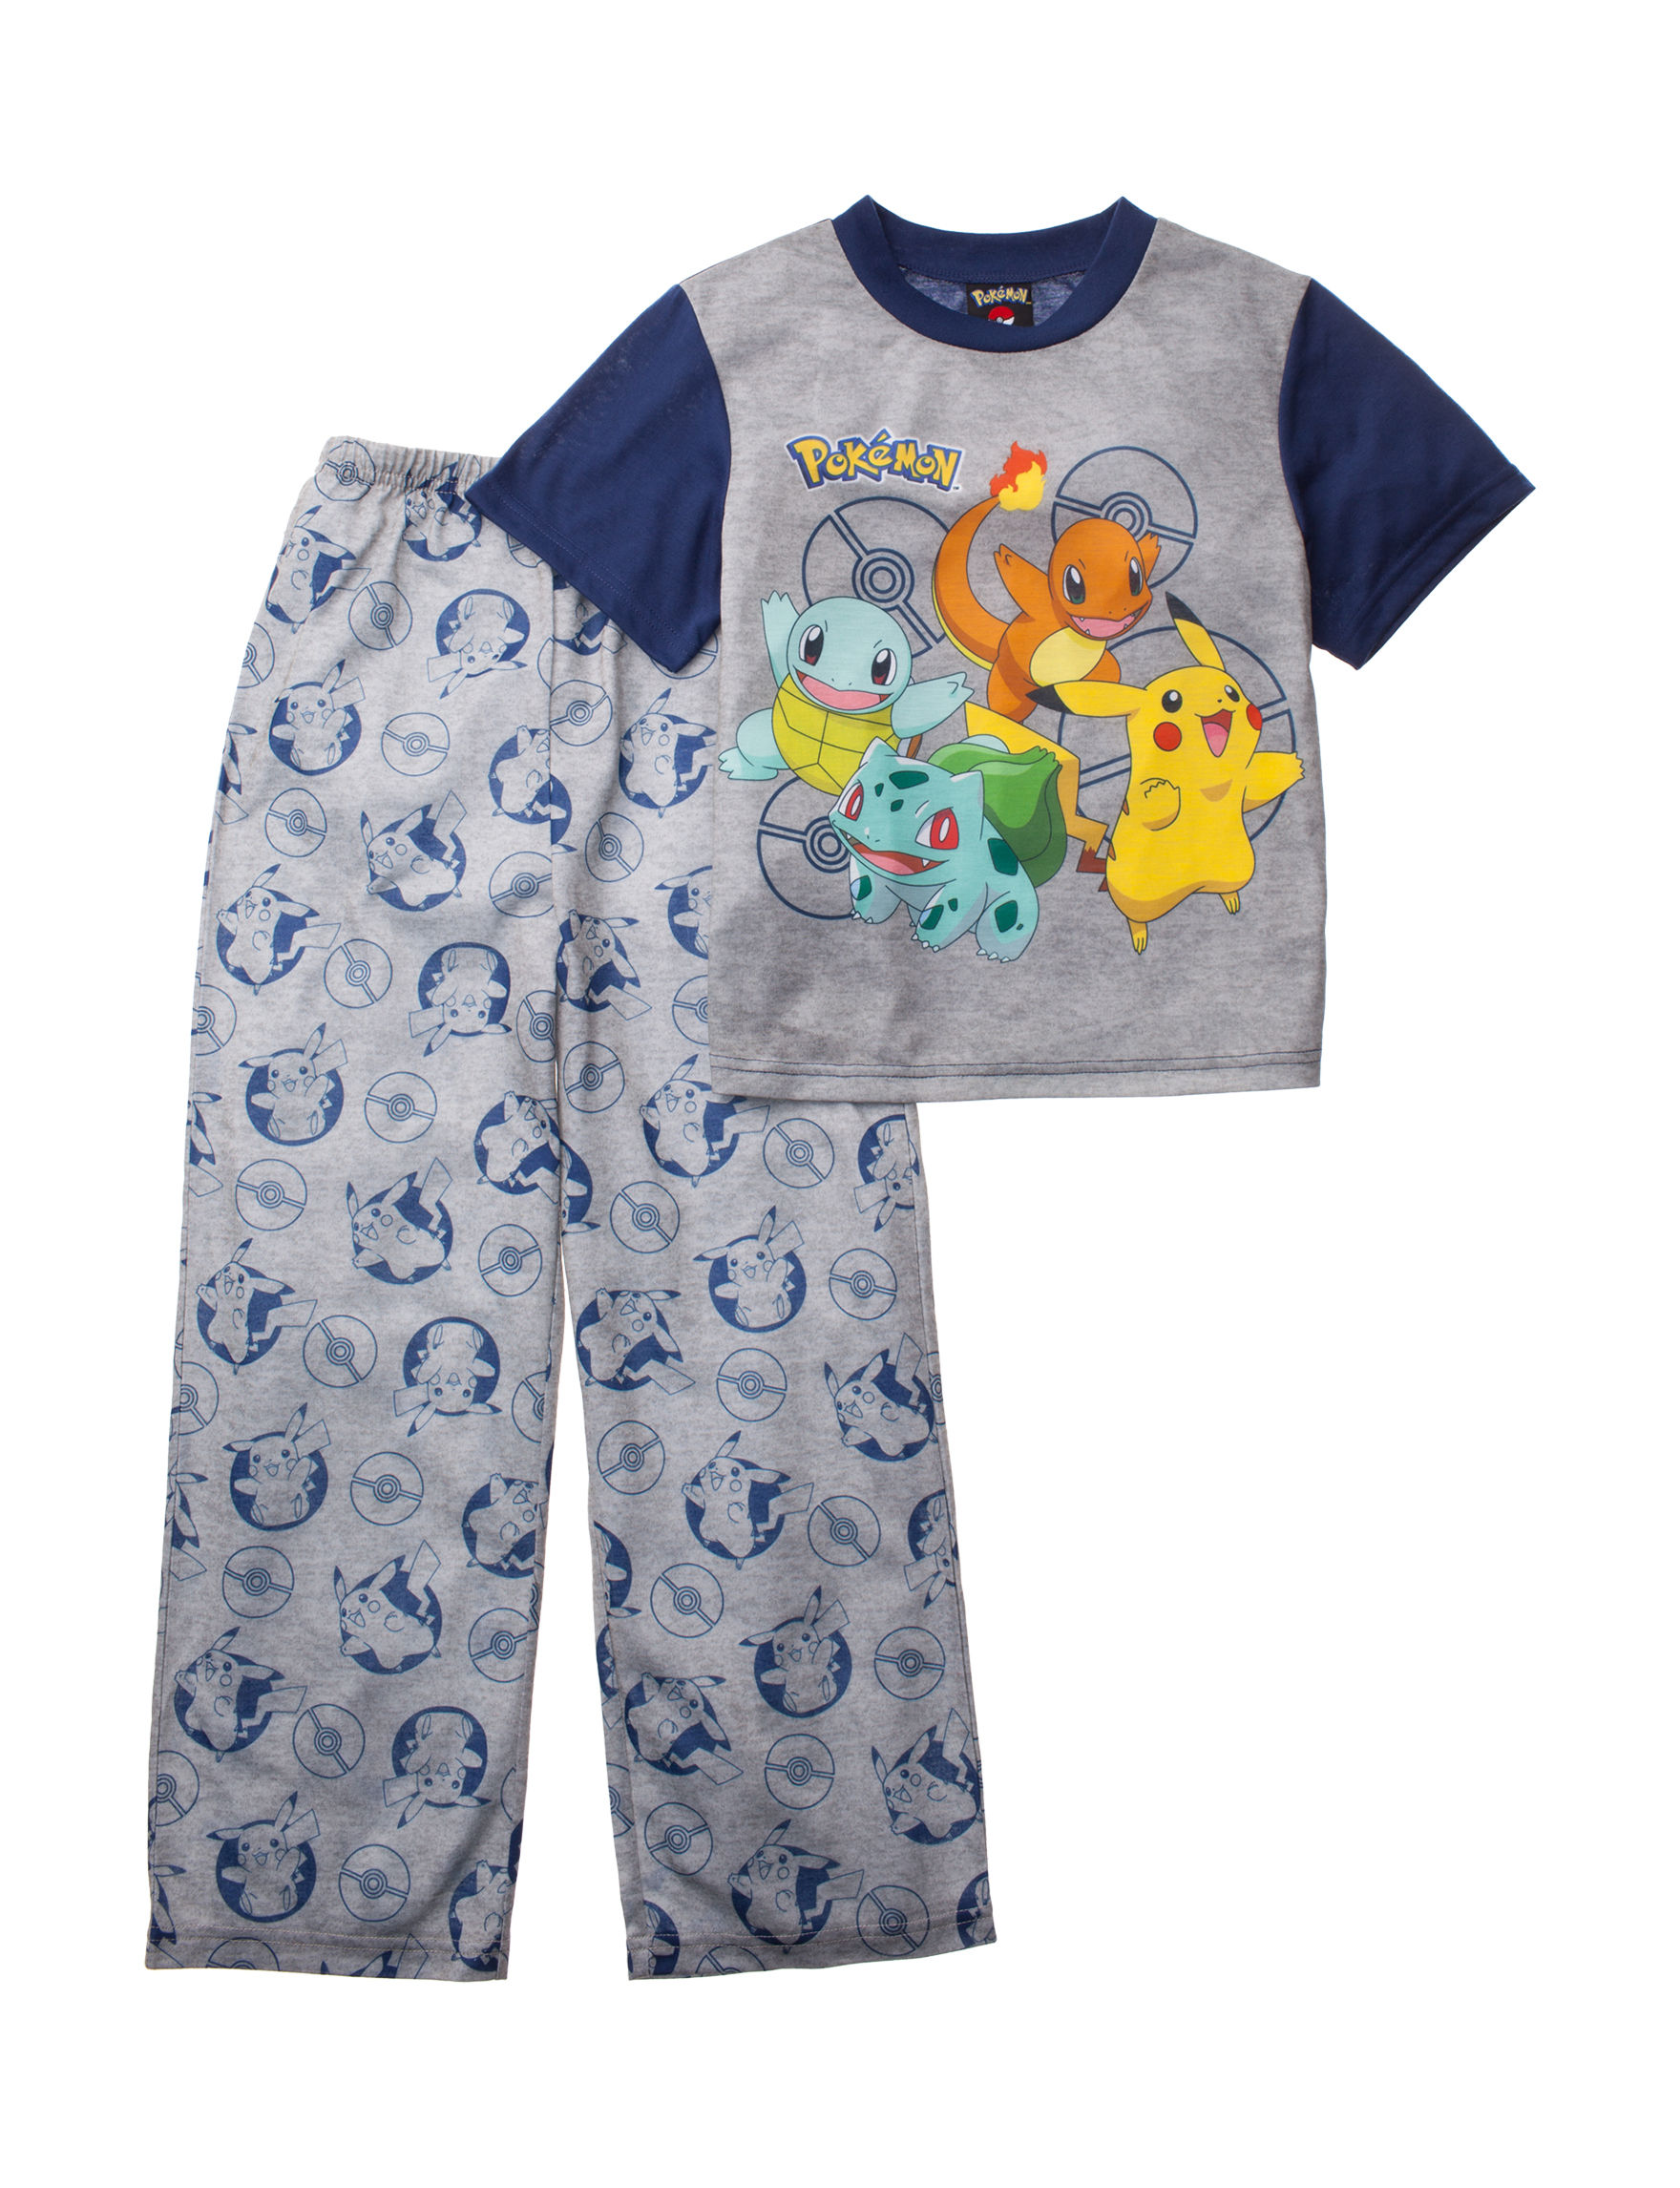 Licensed Grey Multi Pajama Sets